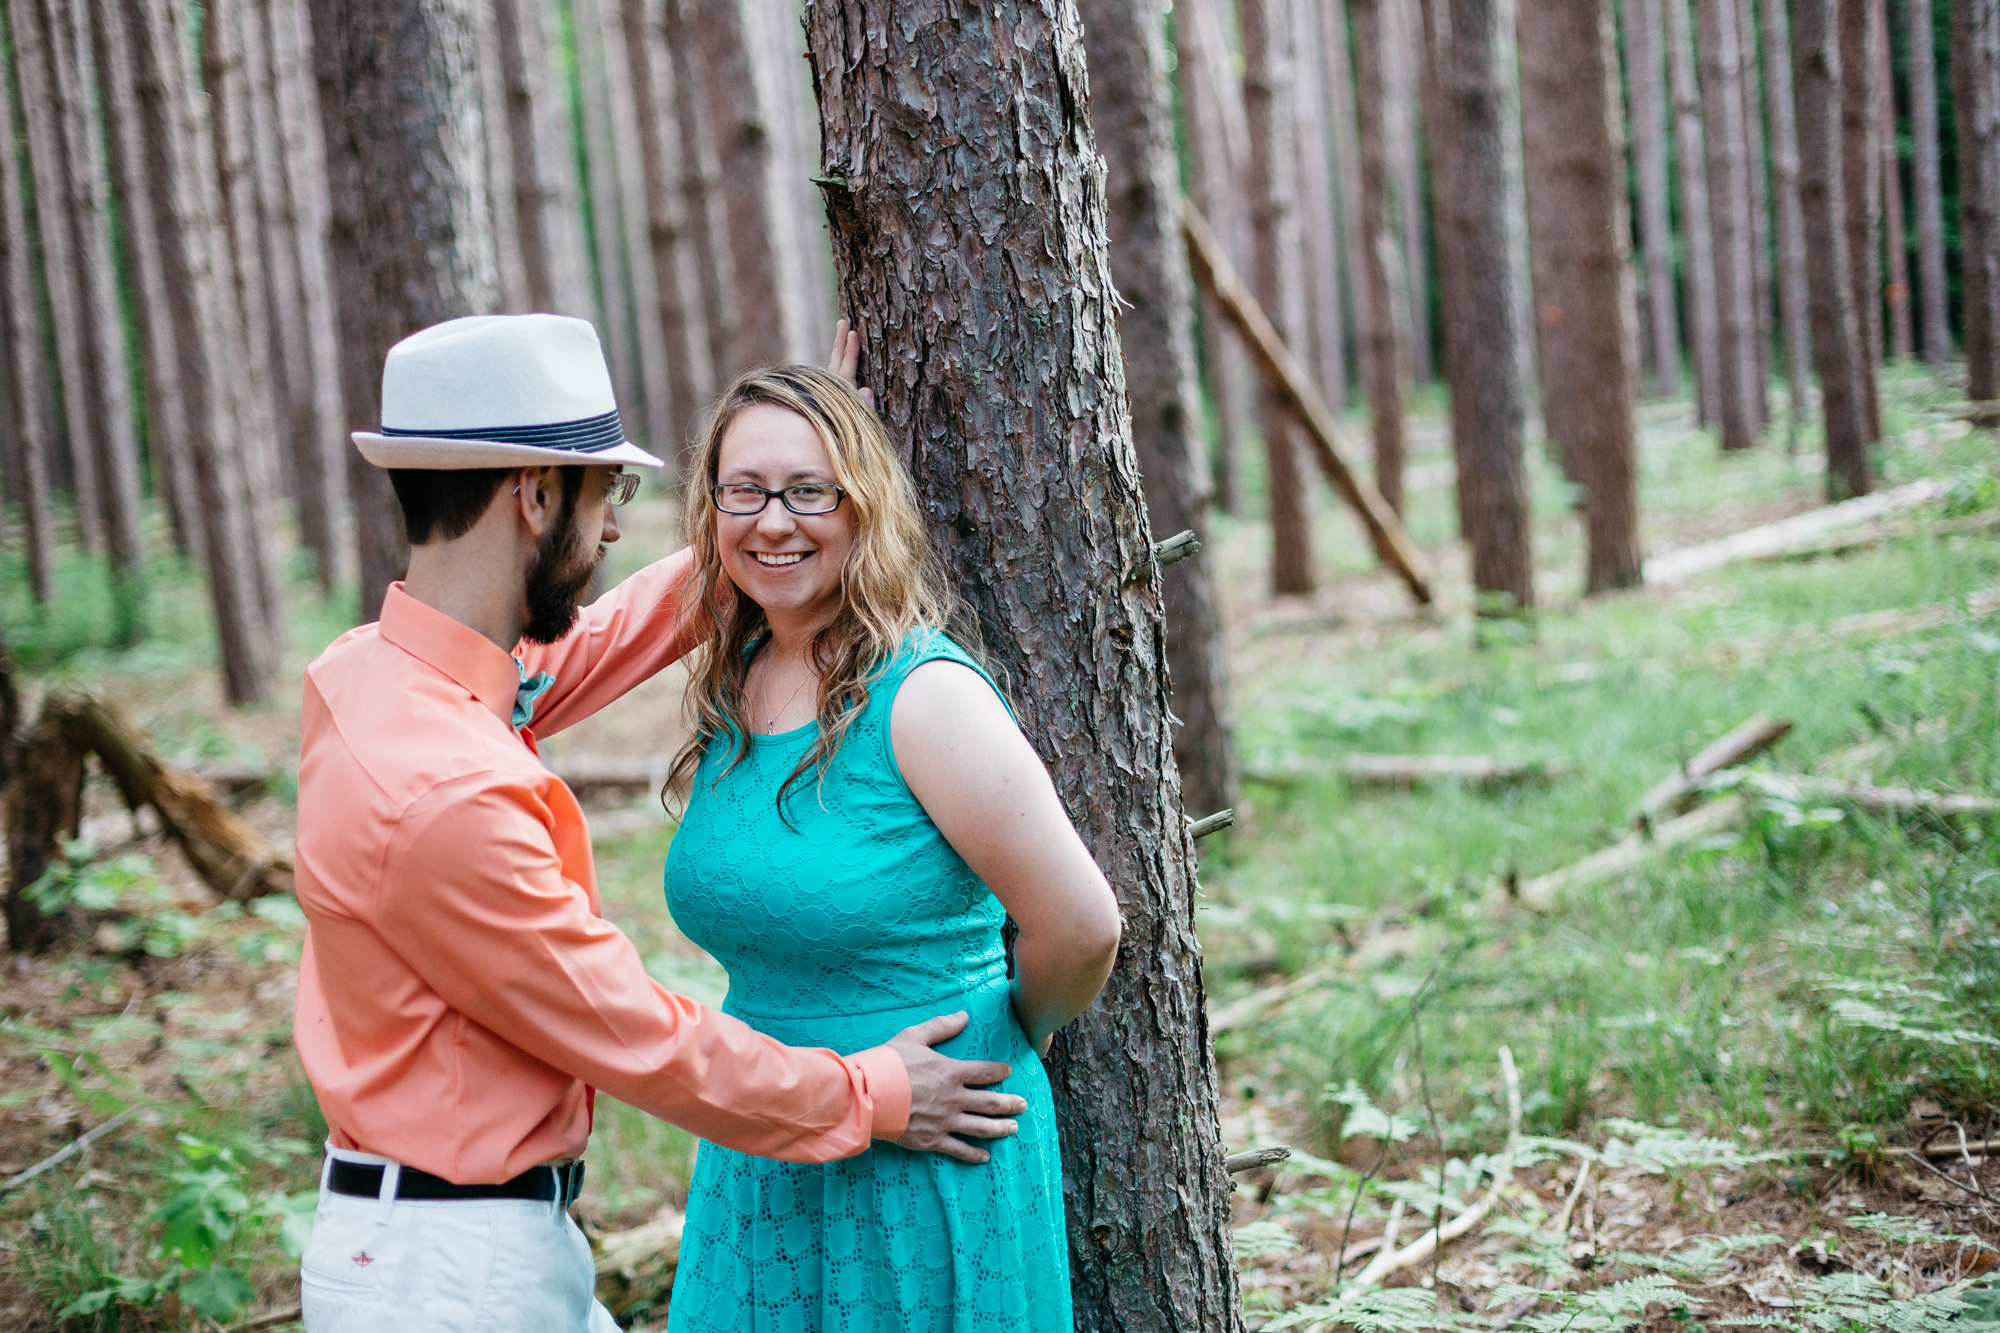 Oak Openings MetroPark Ohio - Peter and Rachel Engaged - Corrie Mick Photography-9.jpg